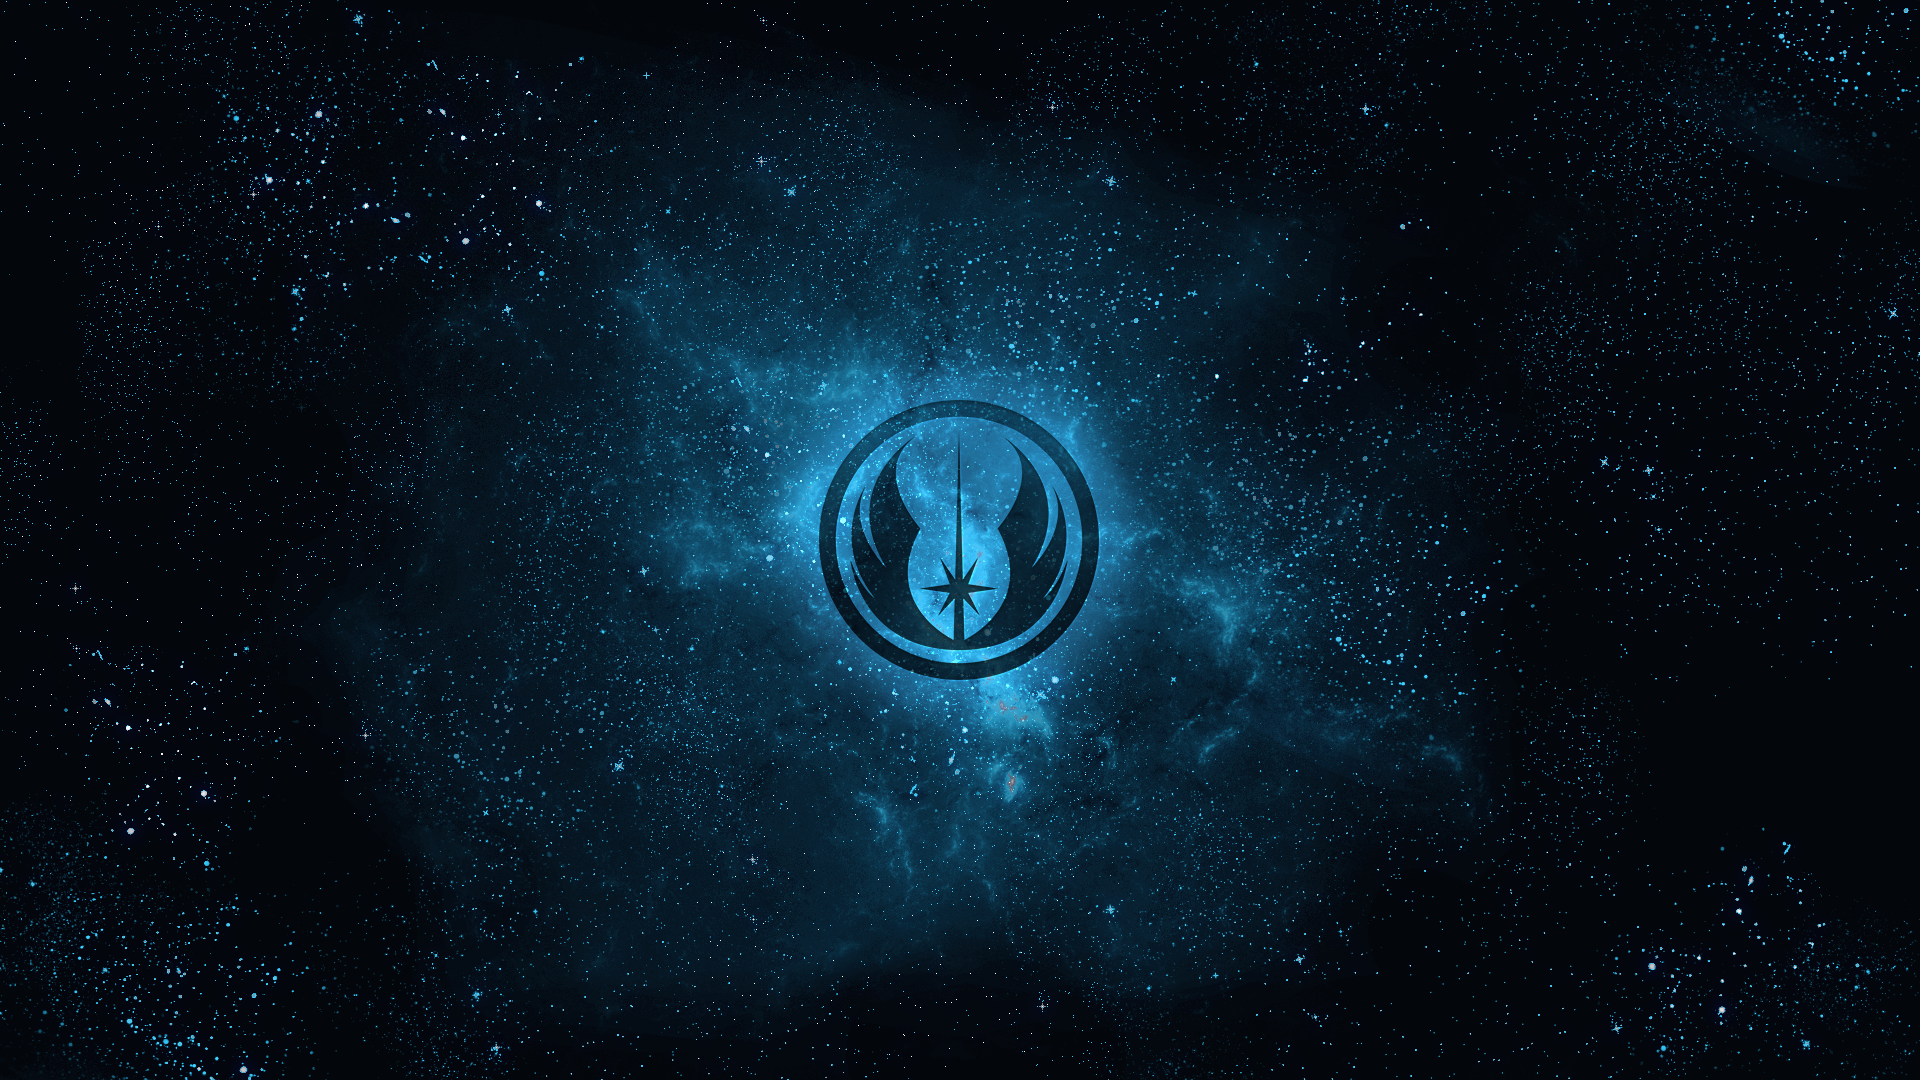 Star Wars Space Wallpapers Top Free Star Wars Space